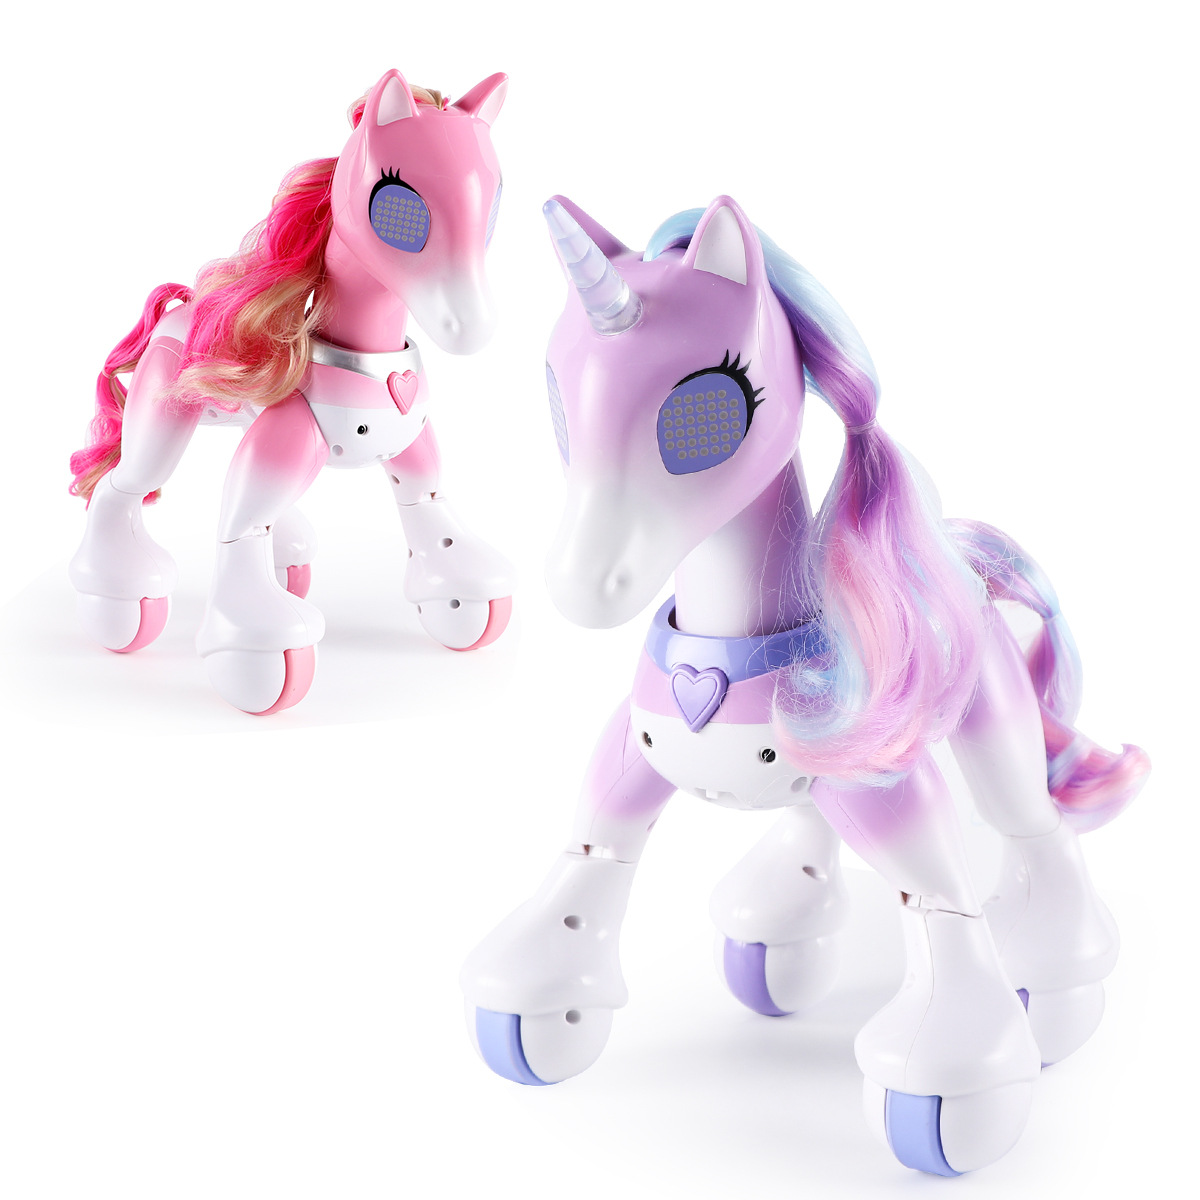 Electric Intelligent Horse Electronic Pet Remote Control Unicorn Children New Style Robot Touch Sensitive Educational Toy